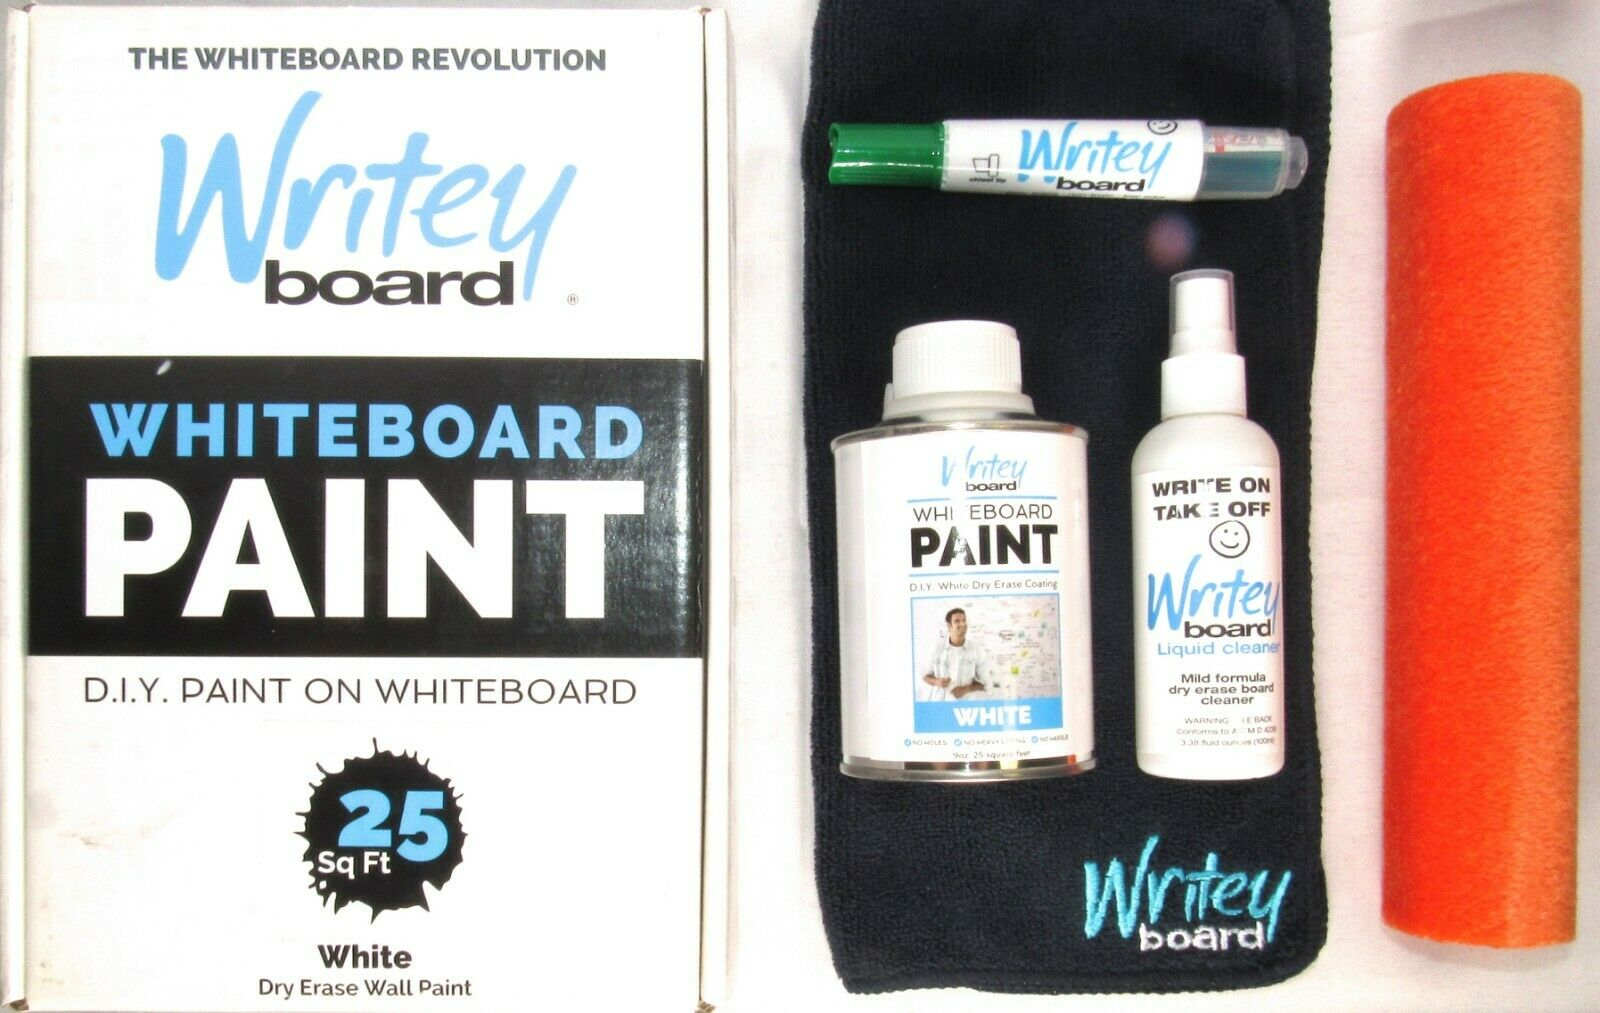 Writey Board 50 Sq Ft Whiteboard Paint Transparent Dry Erase Wall Paint For Sale Online Ebay